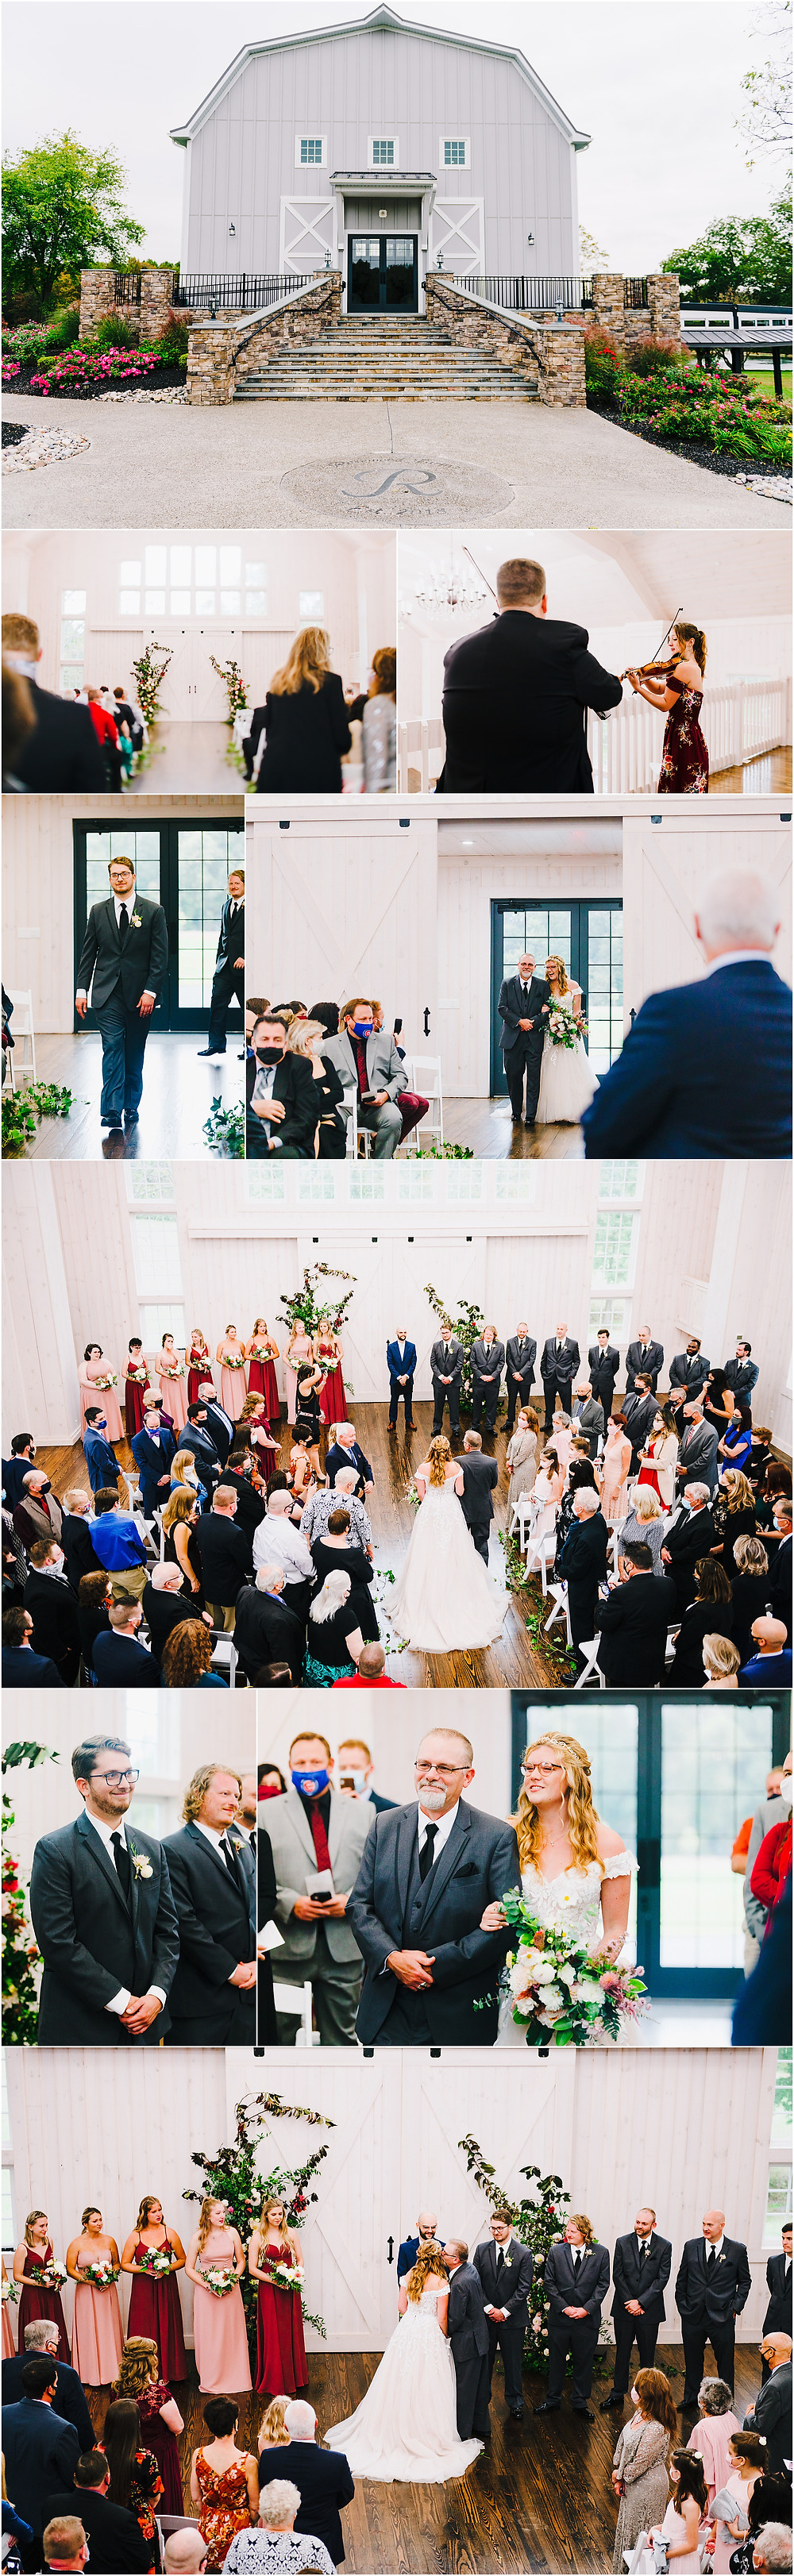 Wedding Ceremony at the rustic barn, Rosewood Farms Wedding